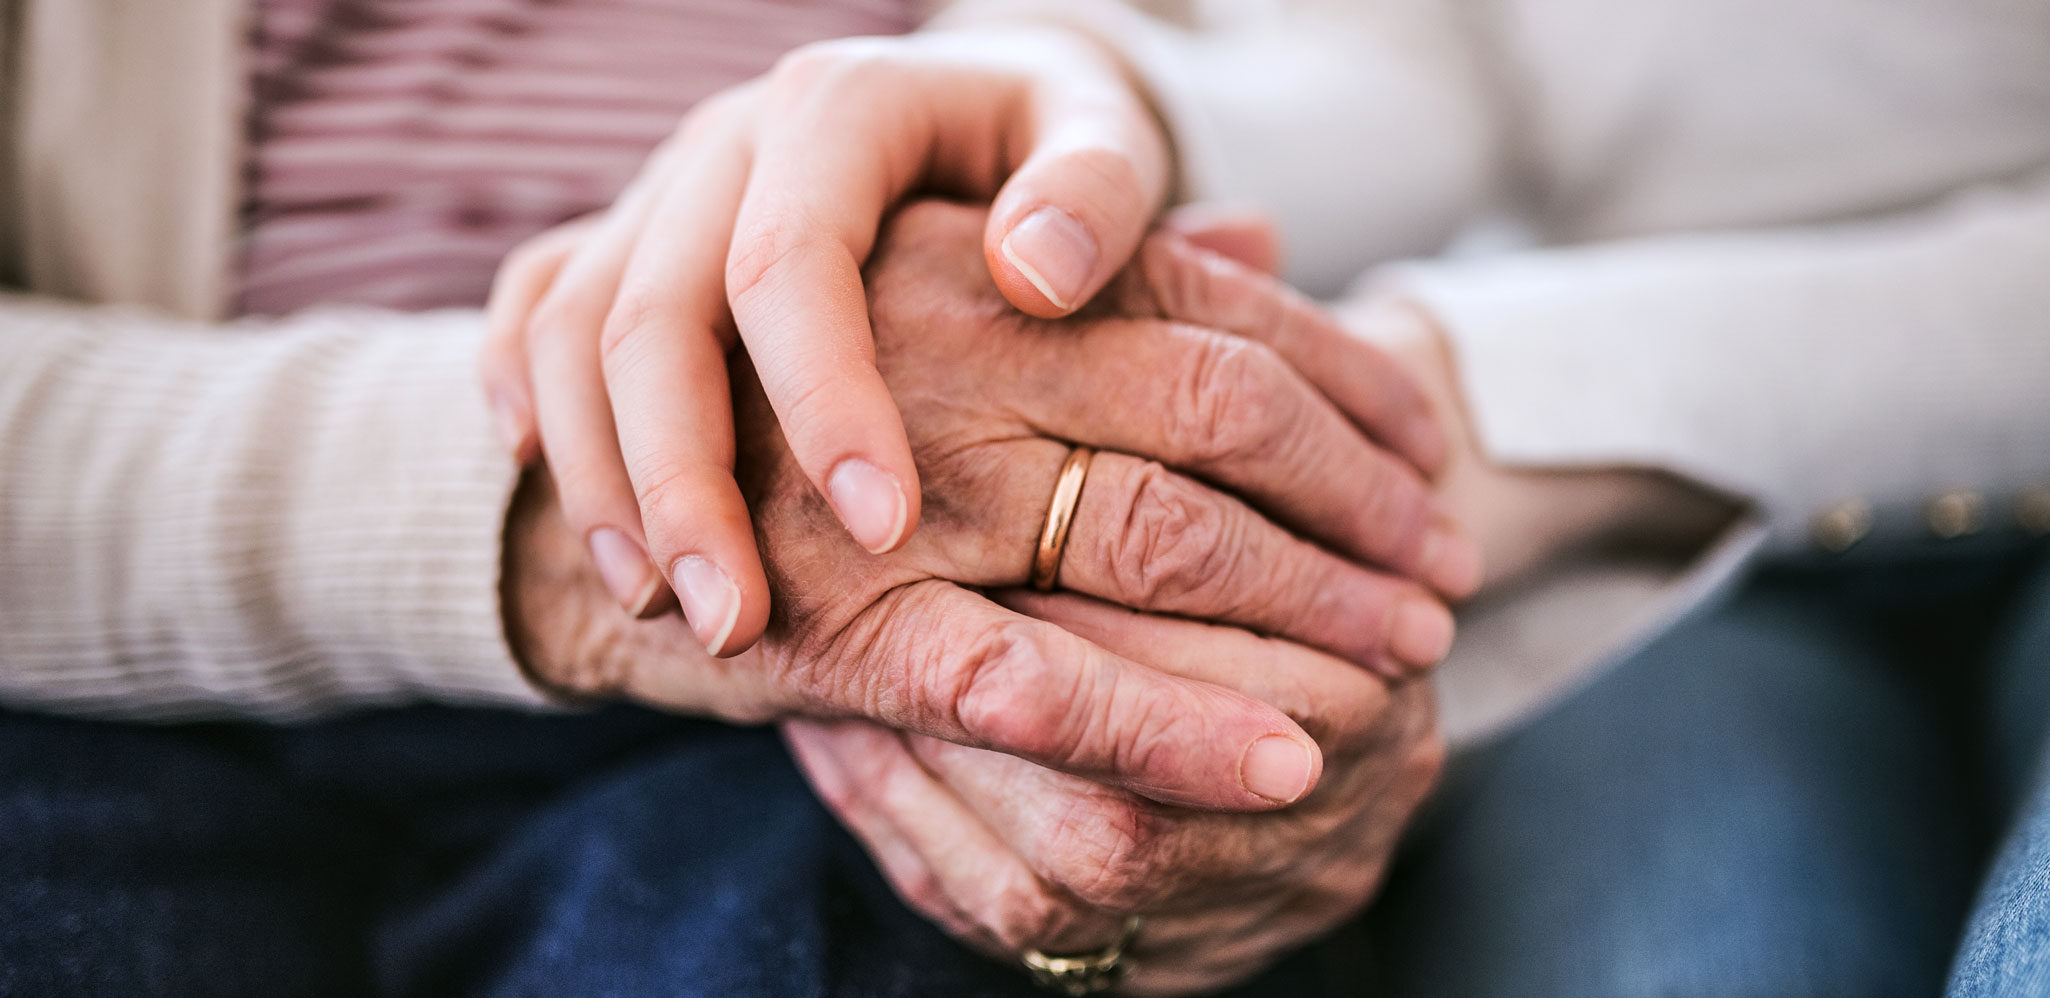 A close up photo of one pair of hands clasping another set of elderly hands